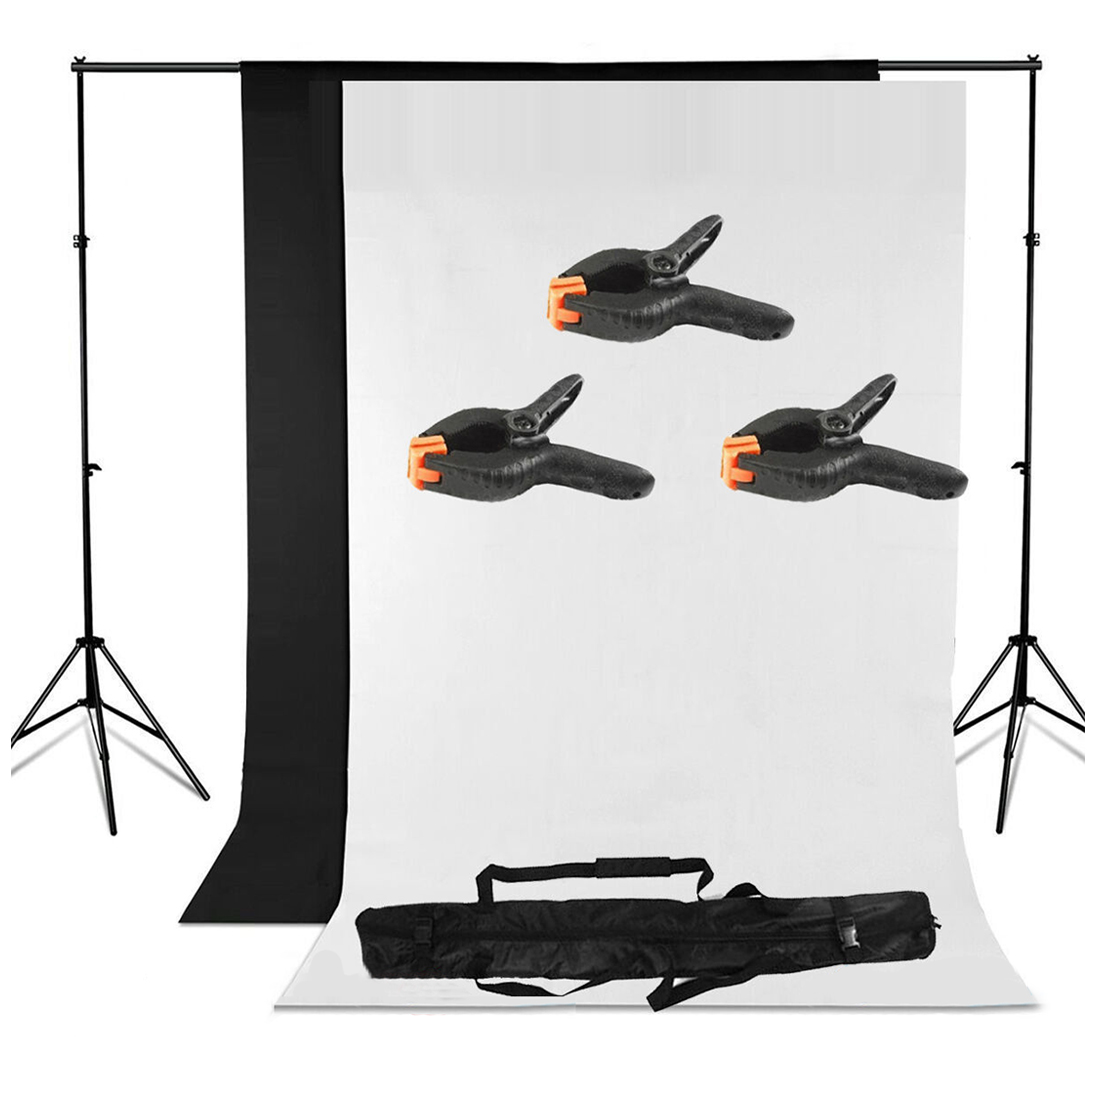 MAHA Hot Photo Lighting Studio Support Stand Kit Set Black White Background Backdrop lightdow 2x3m 6 6ftx9 8ft adjustable backdrop stand crossbar kit set photography background support system for muslins backdrops